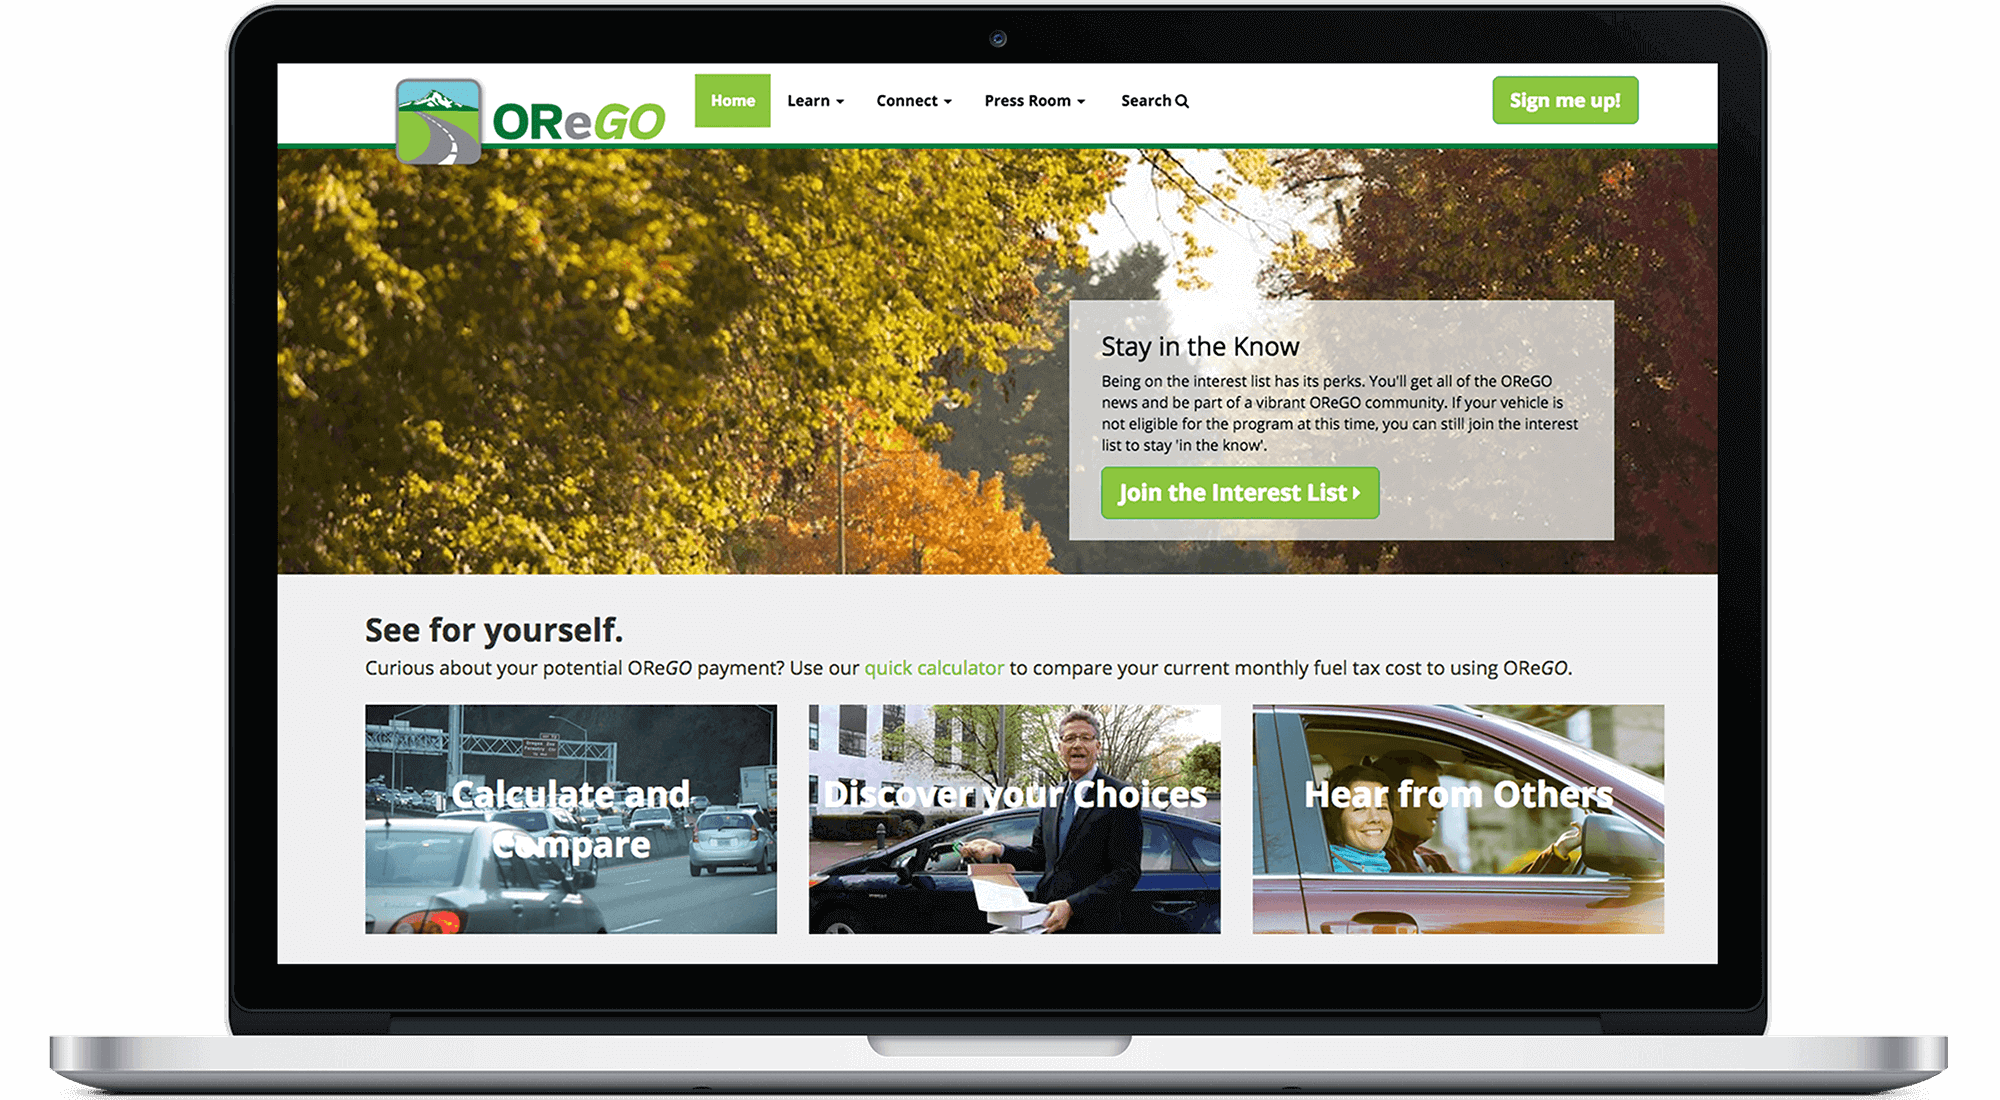 ODOT OReGO Website